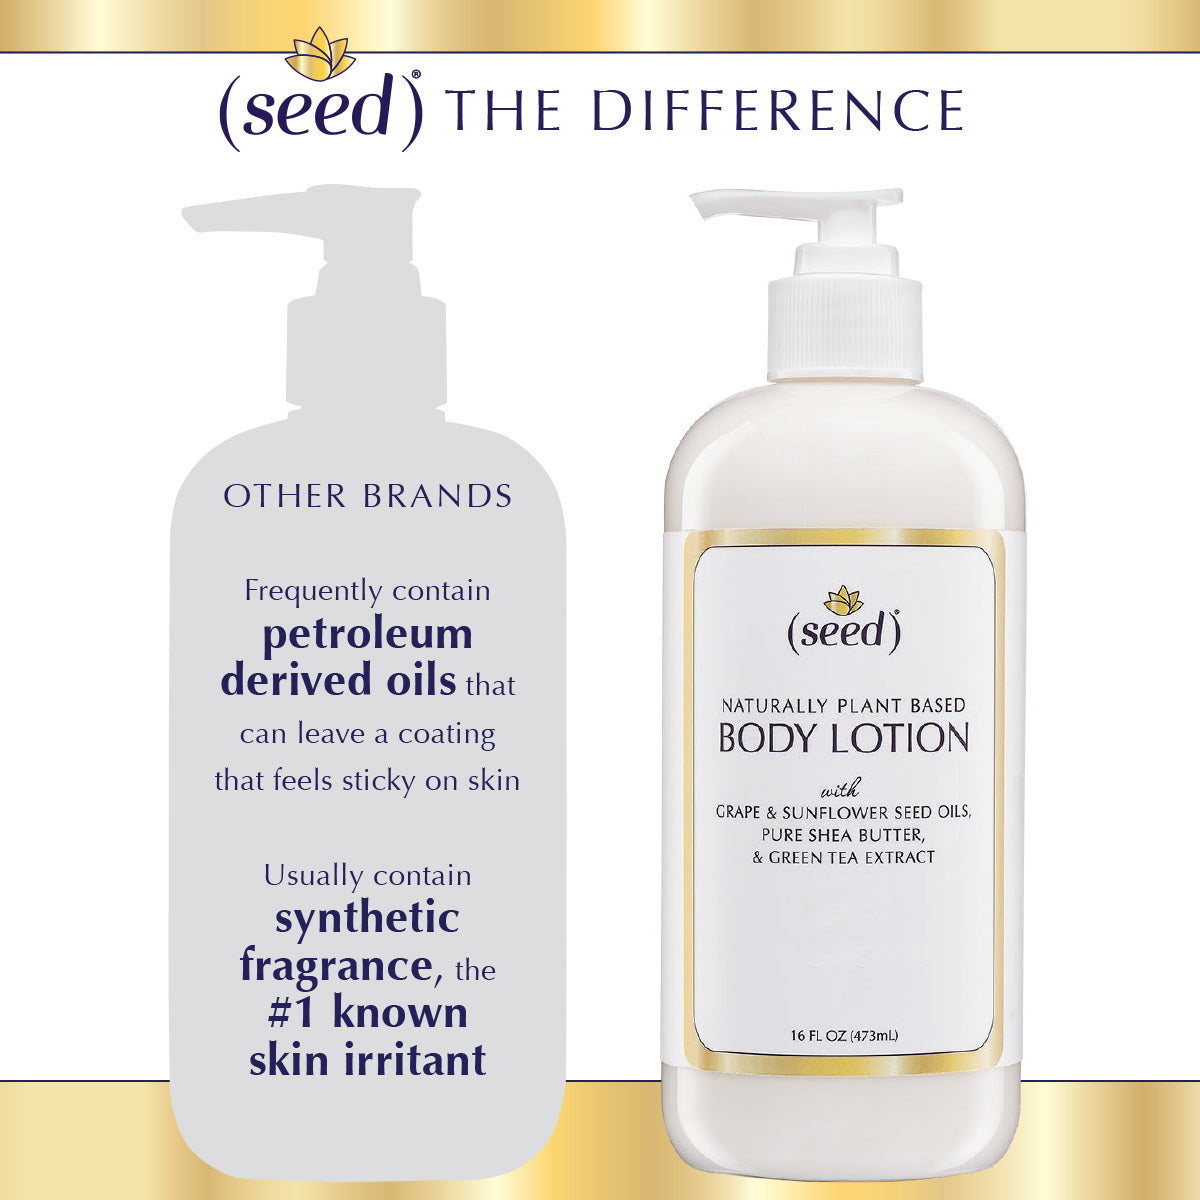 Compare Seed Body Lotion